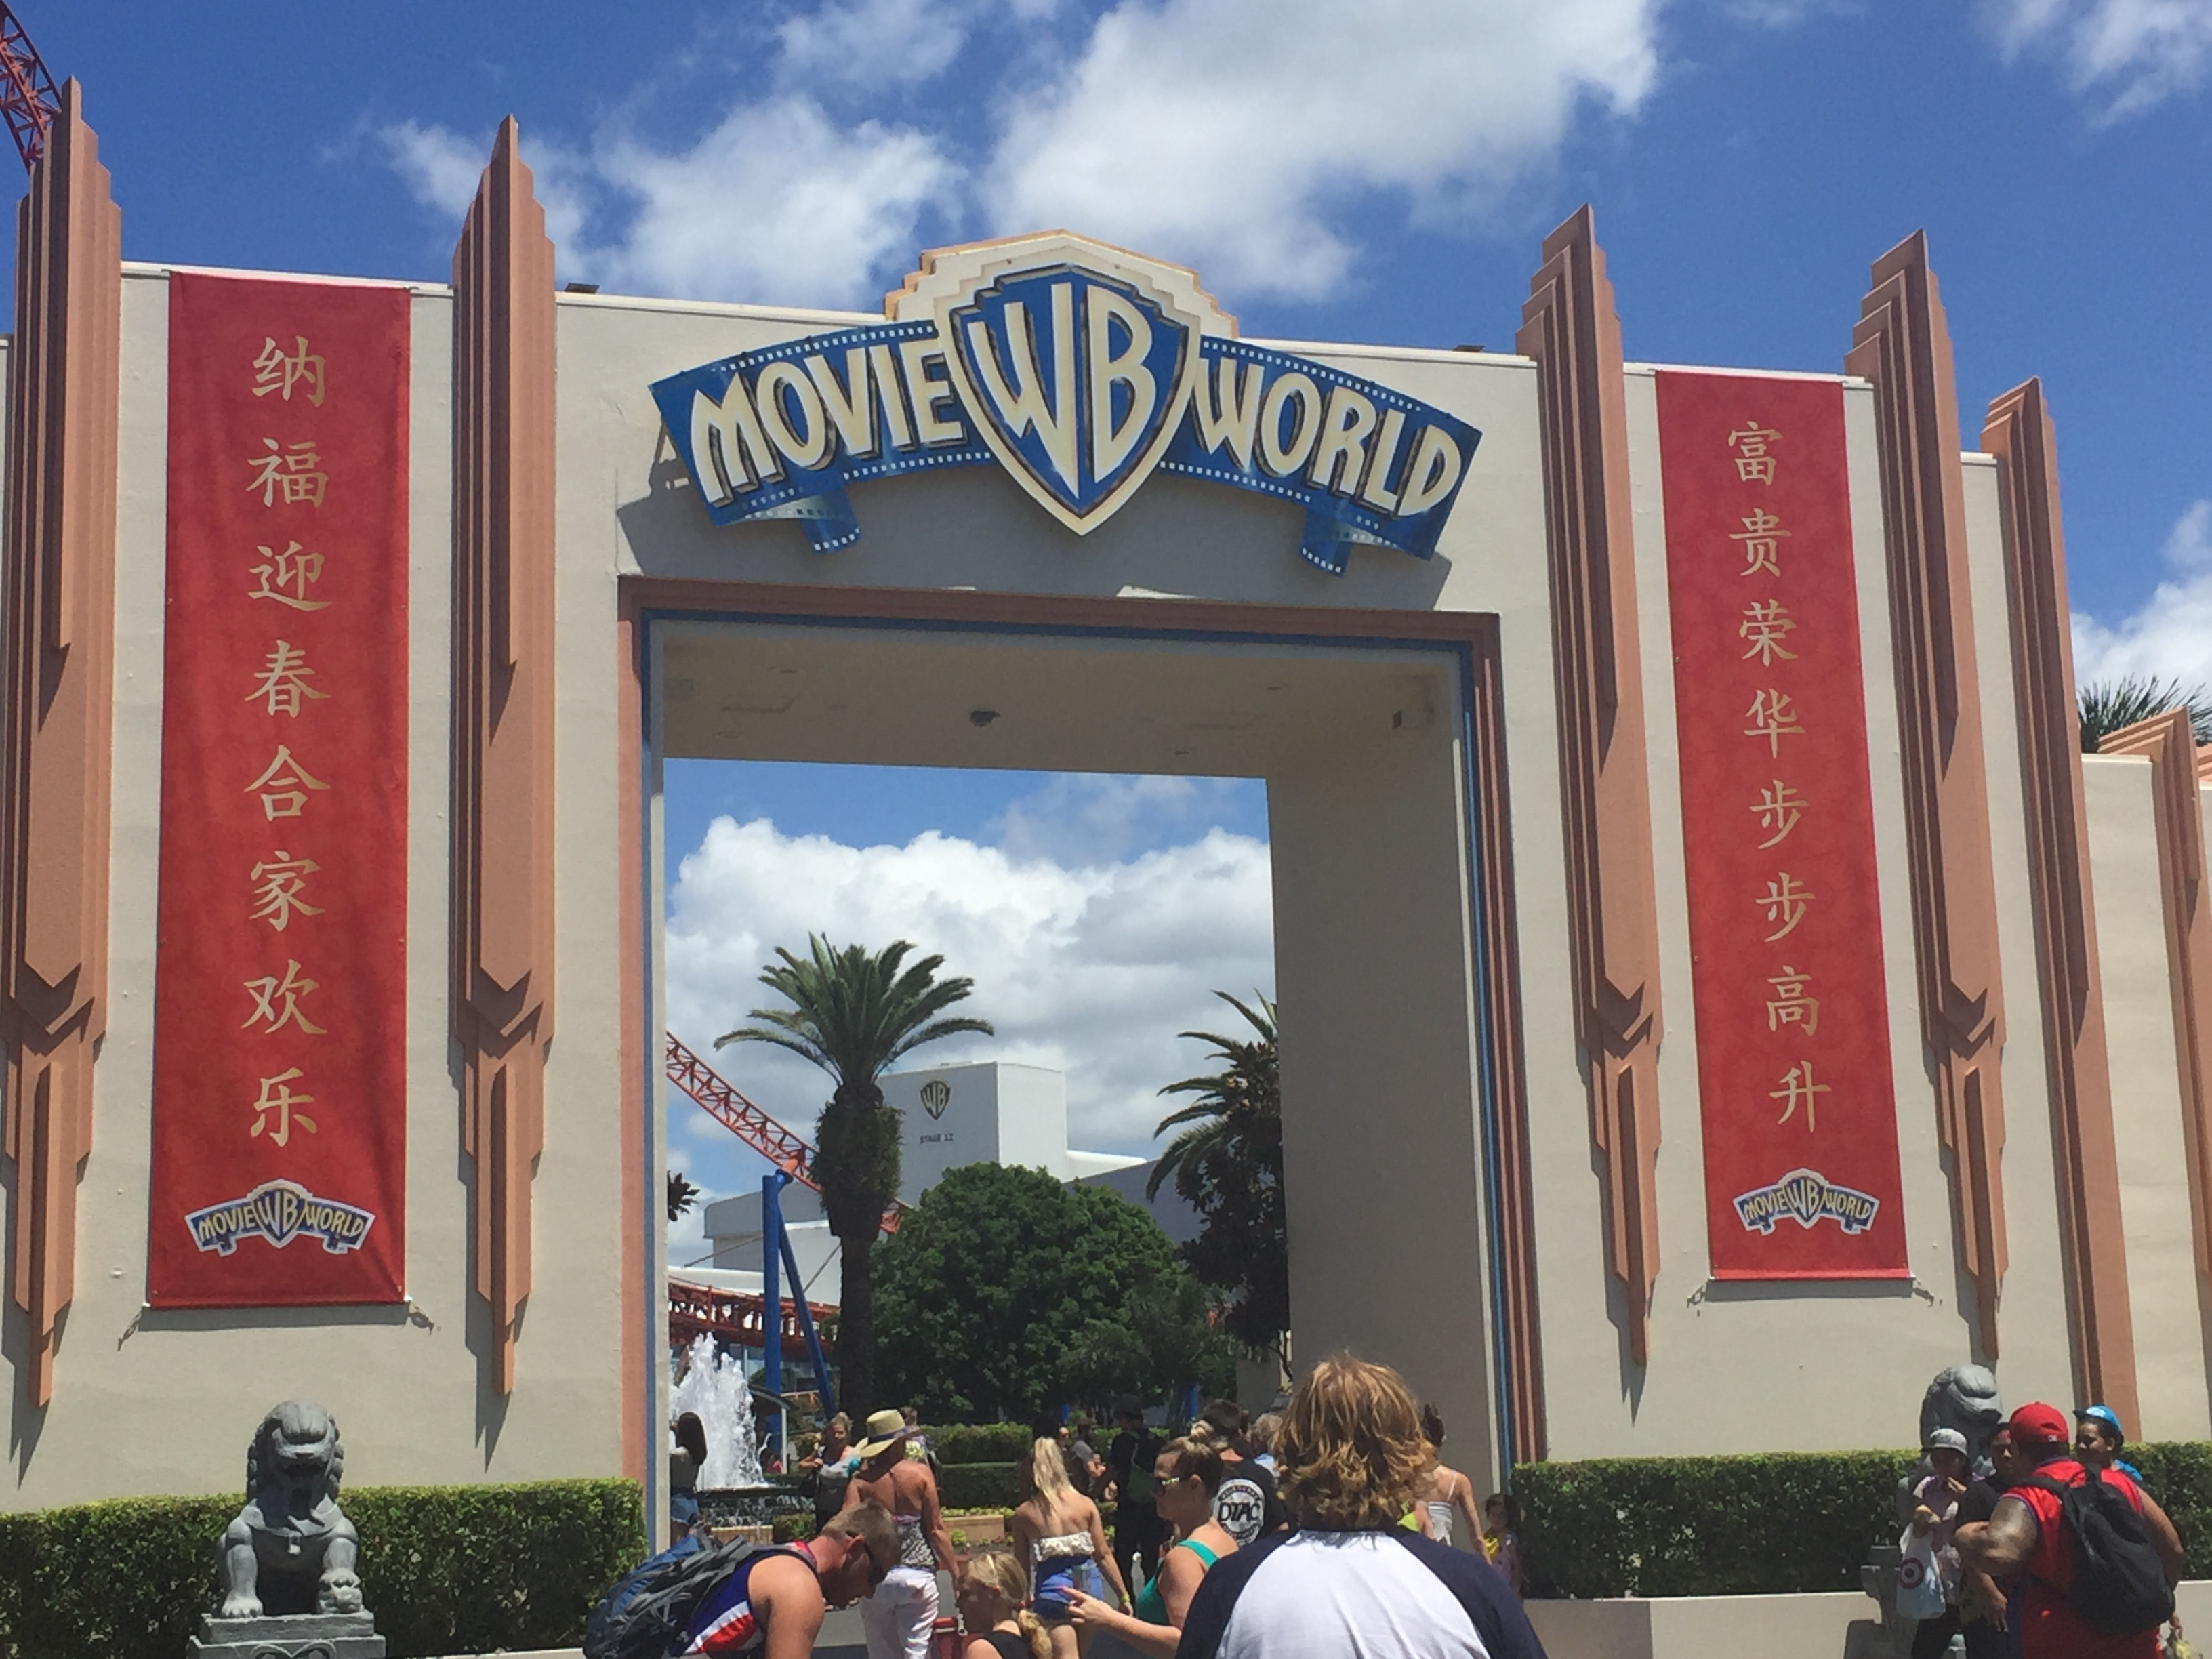 movieworld gold coast brisbane by denise hc